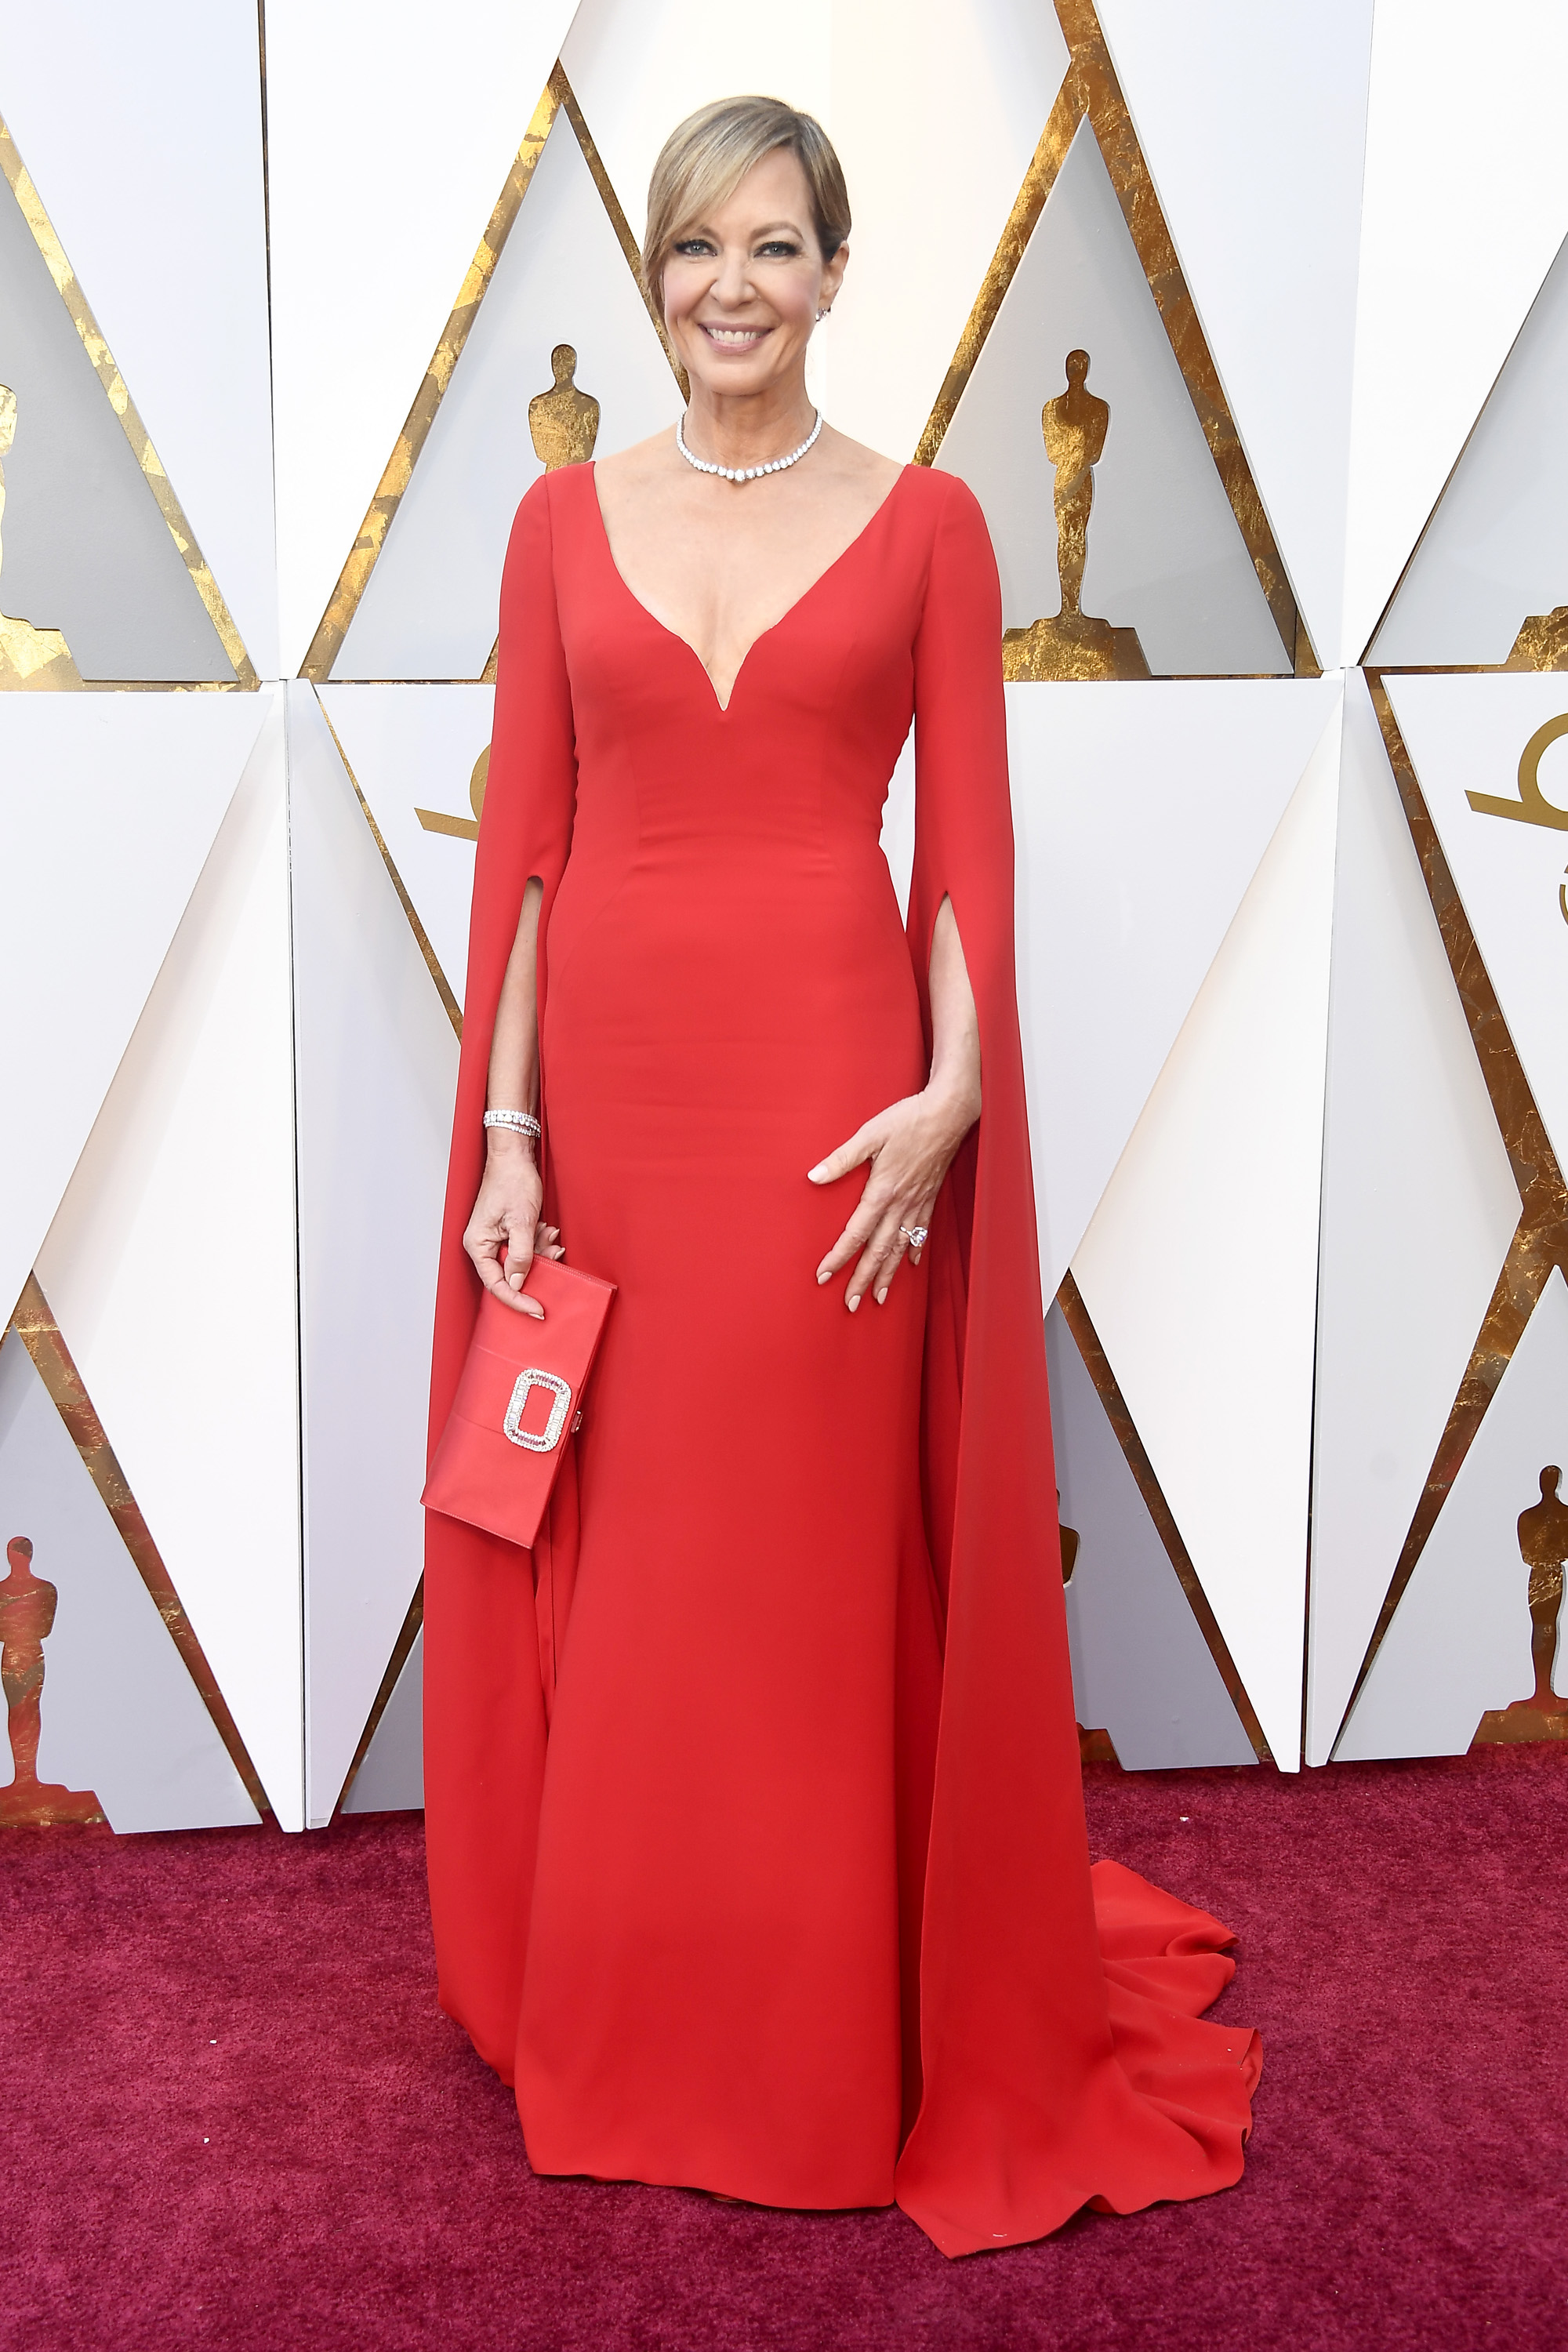 HOLLYWOOD, CA - MARCH 04:  Allison Janney attends the 90th Annual Academy Awards at Hollywood & Highland Center on March 4, 2018 in Hollywood, California.  (Photo by Frazer Harrison/Getty Images)